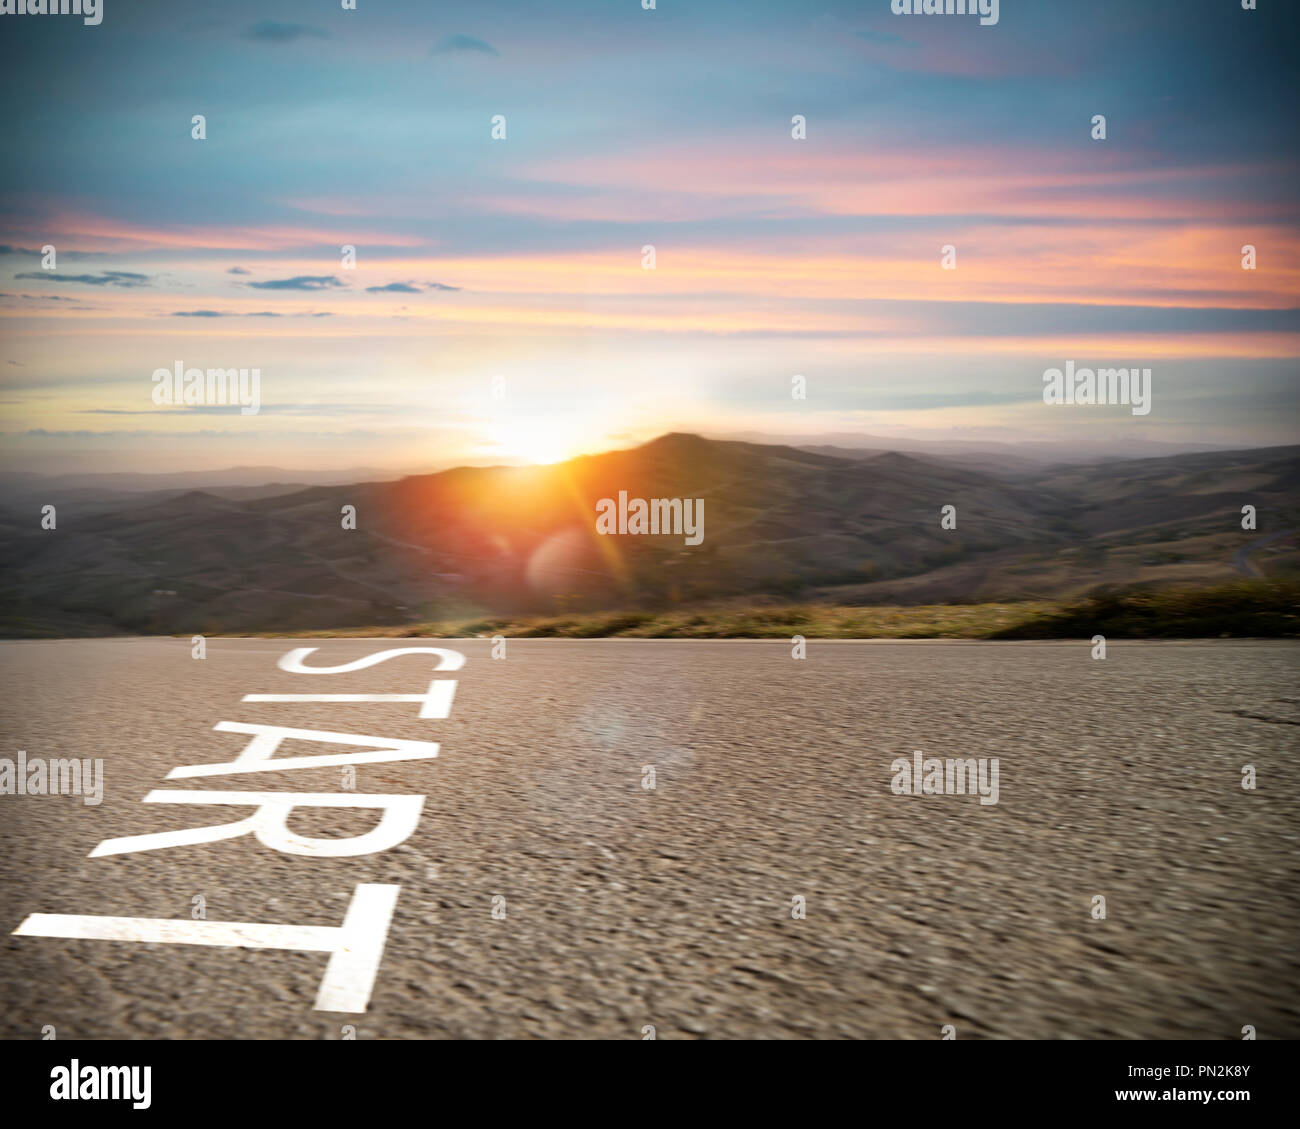 Start written to the ground on a road at sunset. Concept of new beginning and starting new opportunities - Stock Image